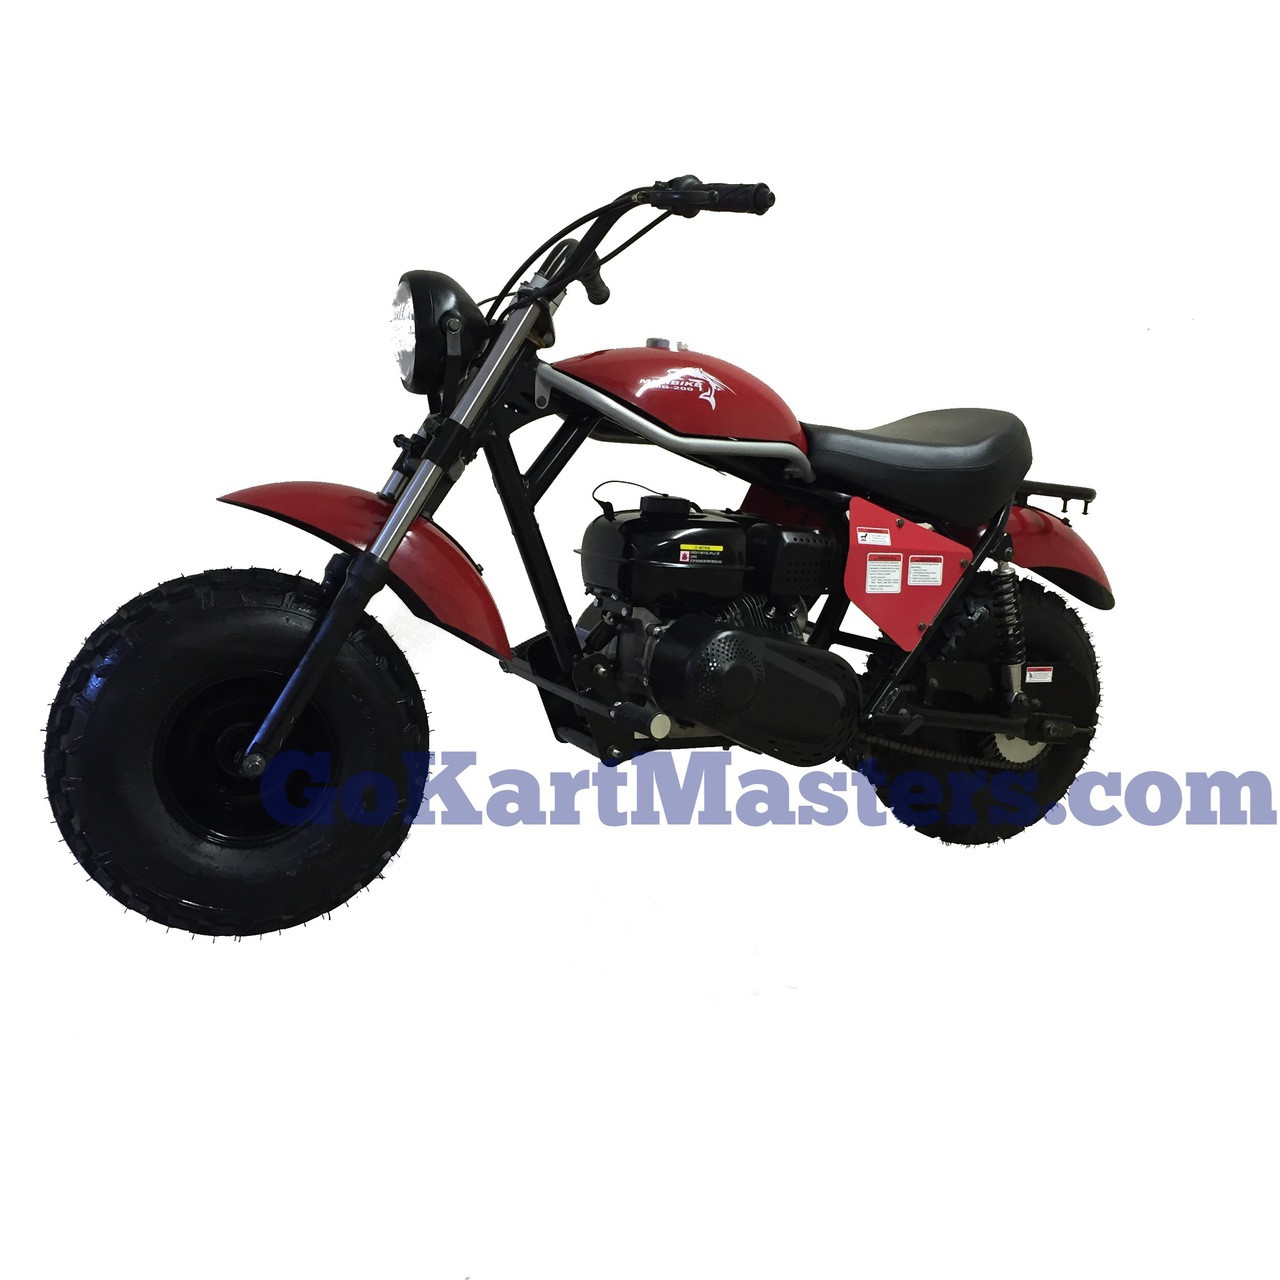 Trailmaster Mb200 2 Mini Bike Ships Free Basic Wiring Pit Setup Shipping Simple Guide To Jetting Red